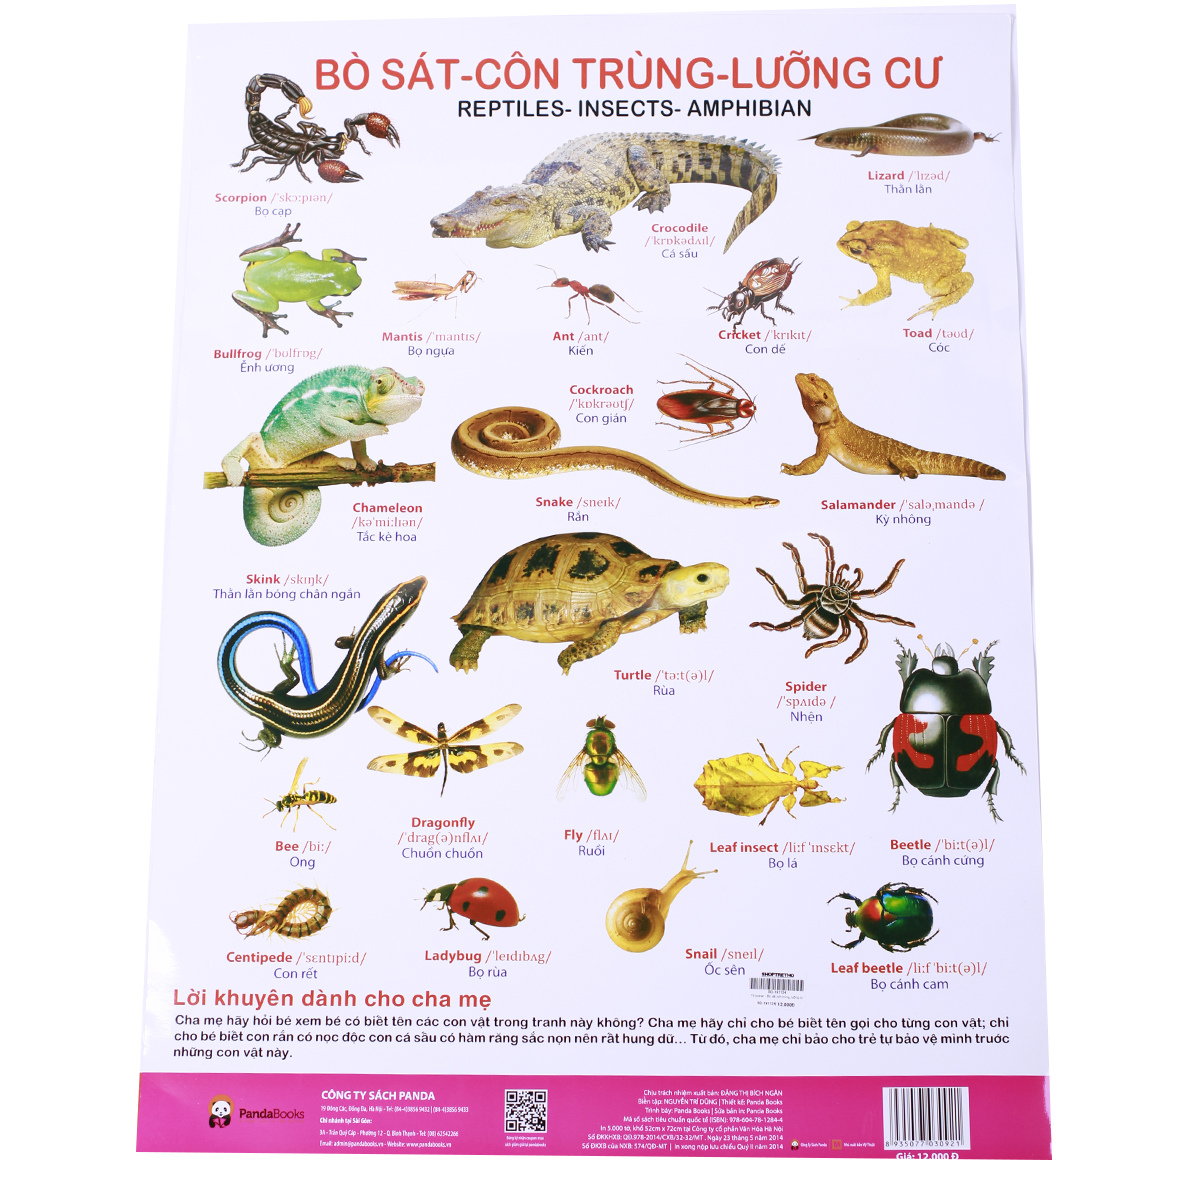 To poster - Bo sat, con trung, luong cu